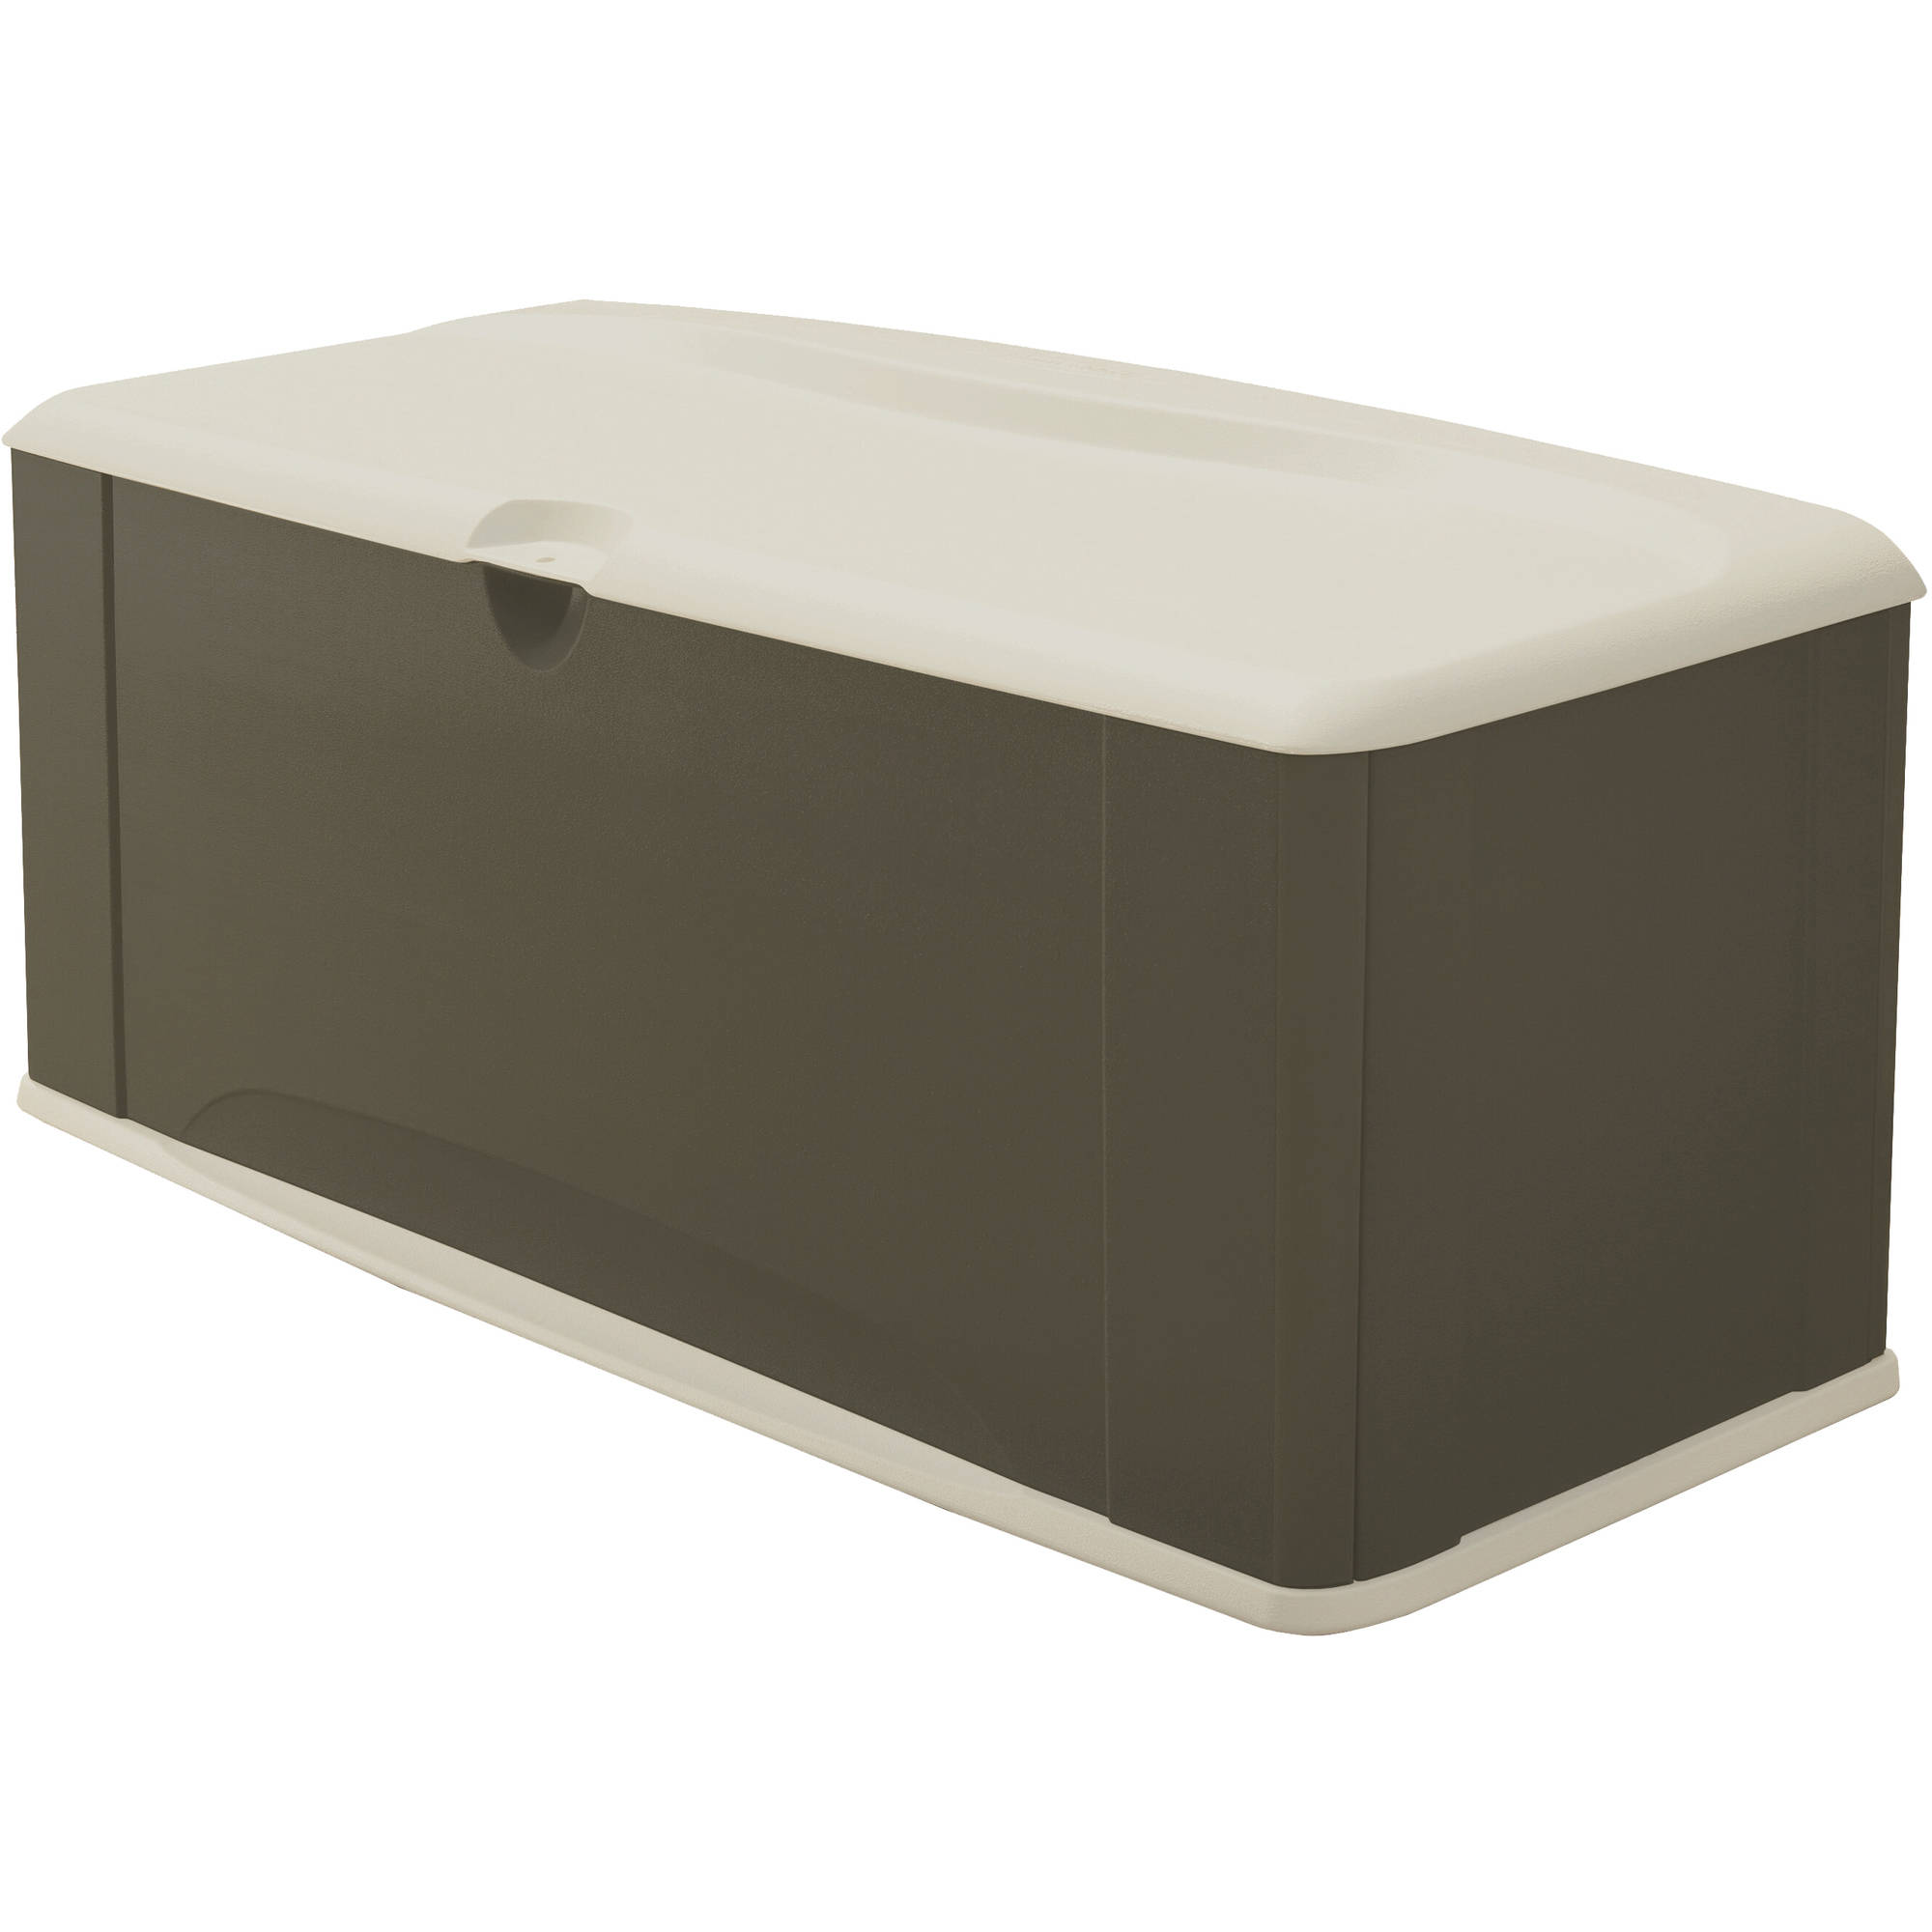 Rubbermaid 121 Gallon Deck Box with Seat by Rubbermaid